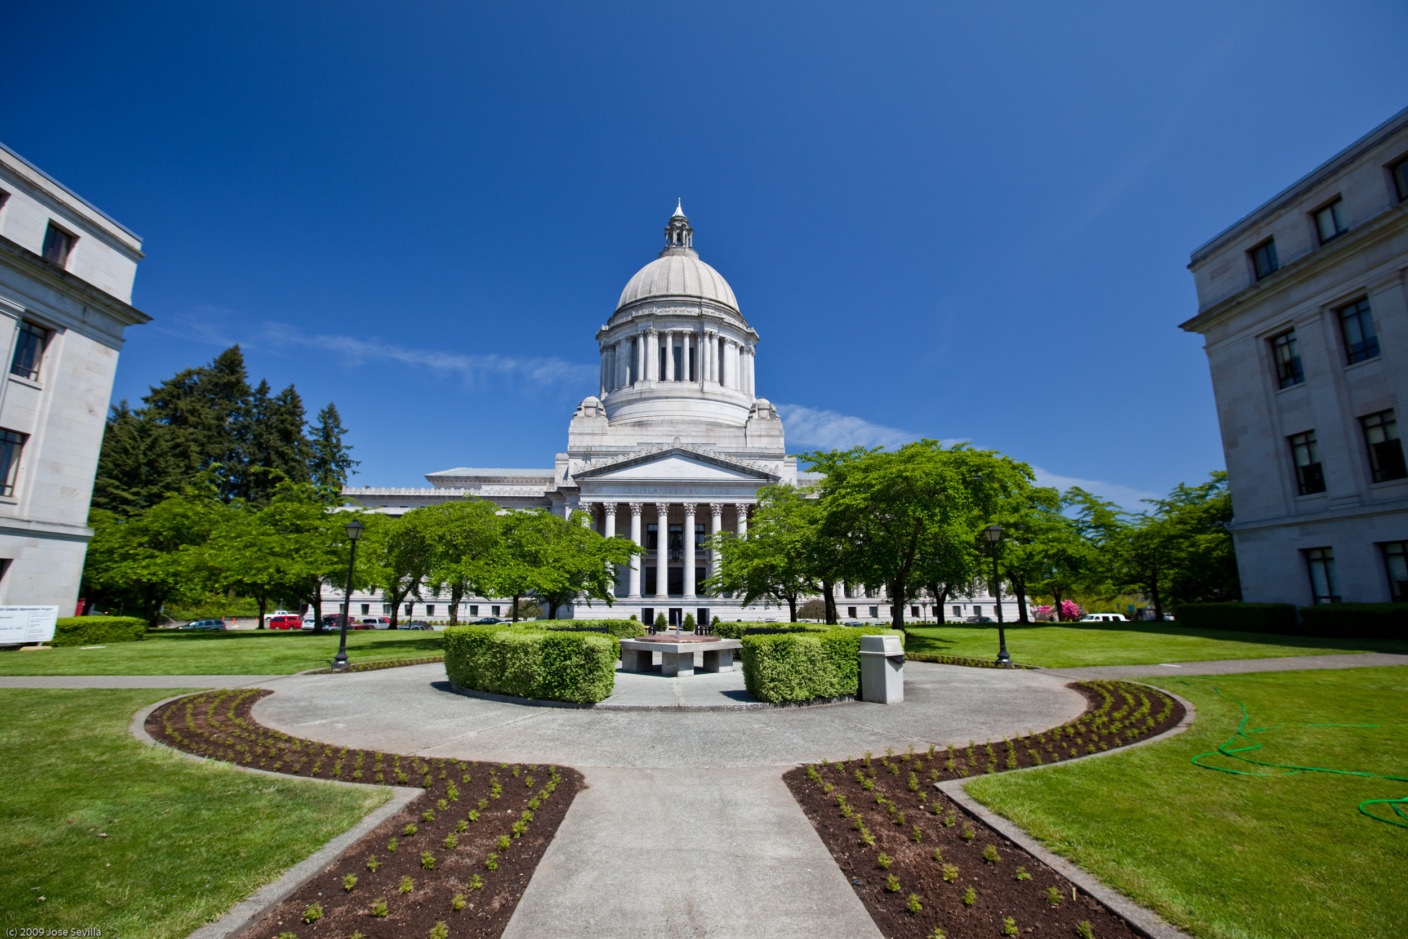 A report from AIA Washington Council on how climate legislation fared in the 2019 state legislative session.